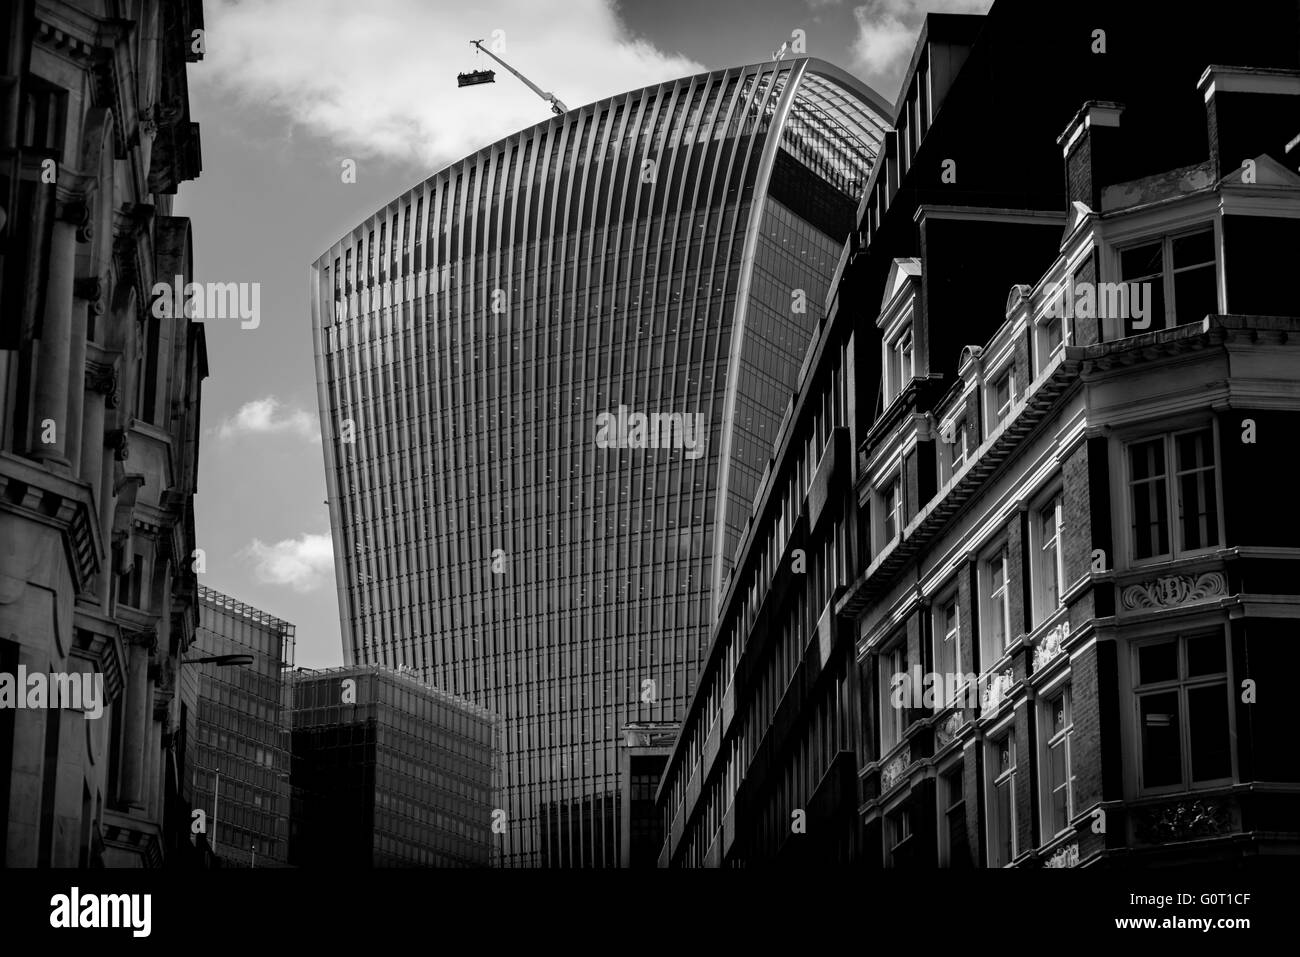 City of London, London, England,UK. 19 April 2016 Walkie Talkie building correctly known as 20 Fenchurch Street - Stock Image